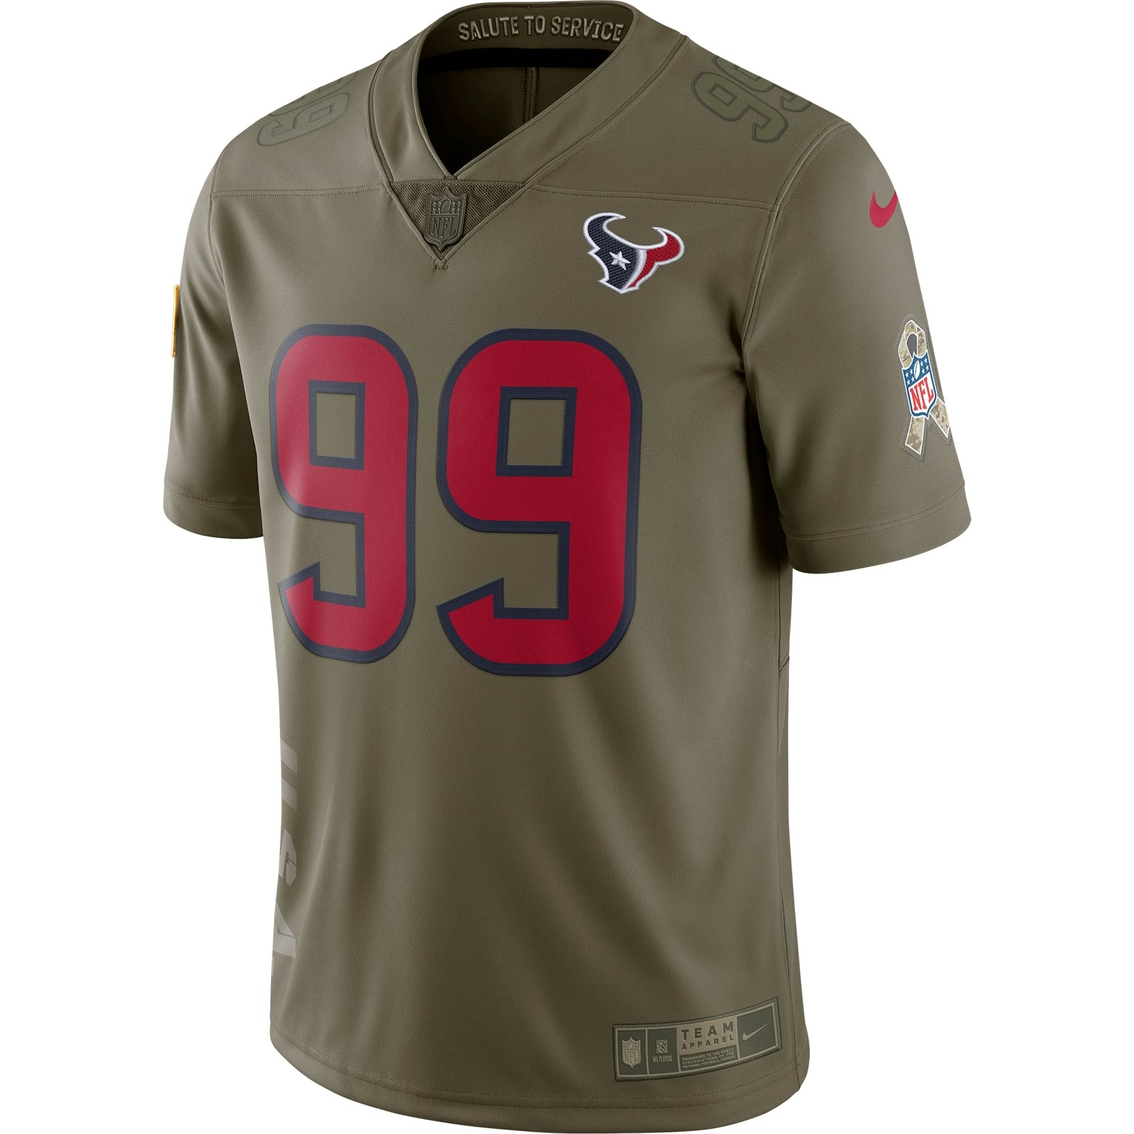 9466ddf37 houston texans salute to service hoodie Nike ...